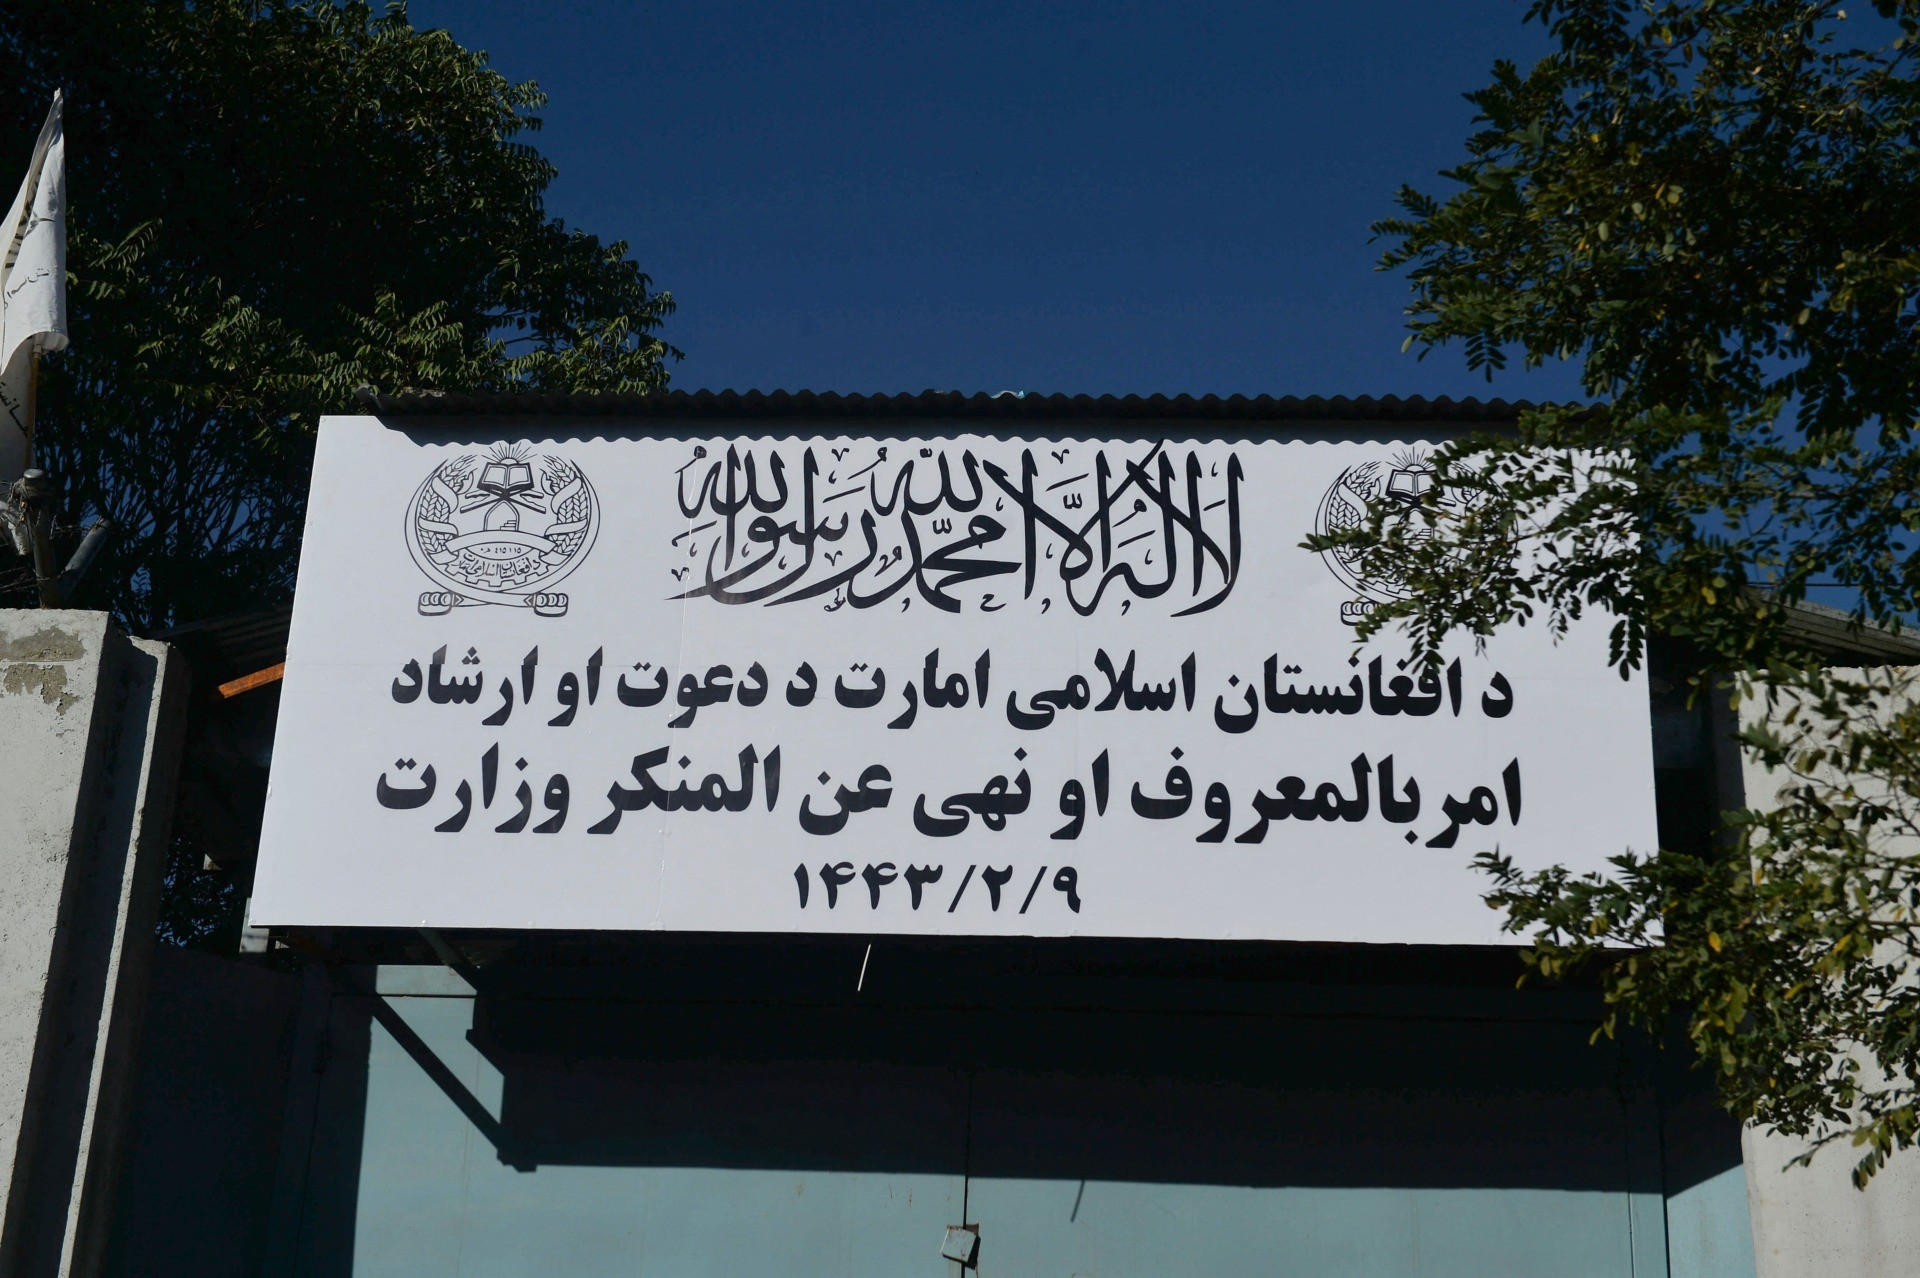 A sign of the Ministry for the Promotion of Virtue and Prevention of Vice, which replaced the Ministry for Women's Affairs, is seen at an entrance gate of a government building in Kabul on September 17, 2021. - The Taliban appeared on September 17 to have shut down the government's ministry of women's affairs and replaced it with a department notorious for enforcing strict religious doctrine during their first rule two decades ago. (Photo by Hoshang Hashimi / AFP) (Photo by HOSHANG HASHIMI/AFP via Getty Images)